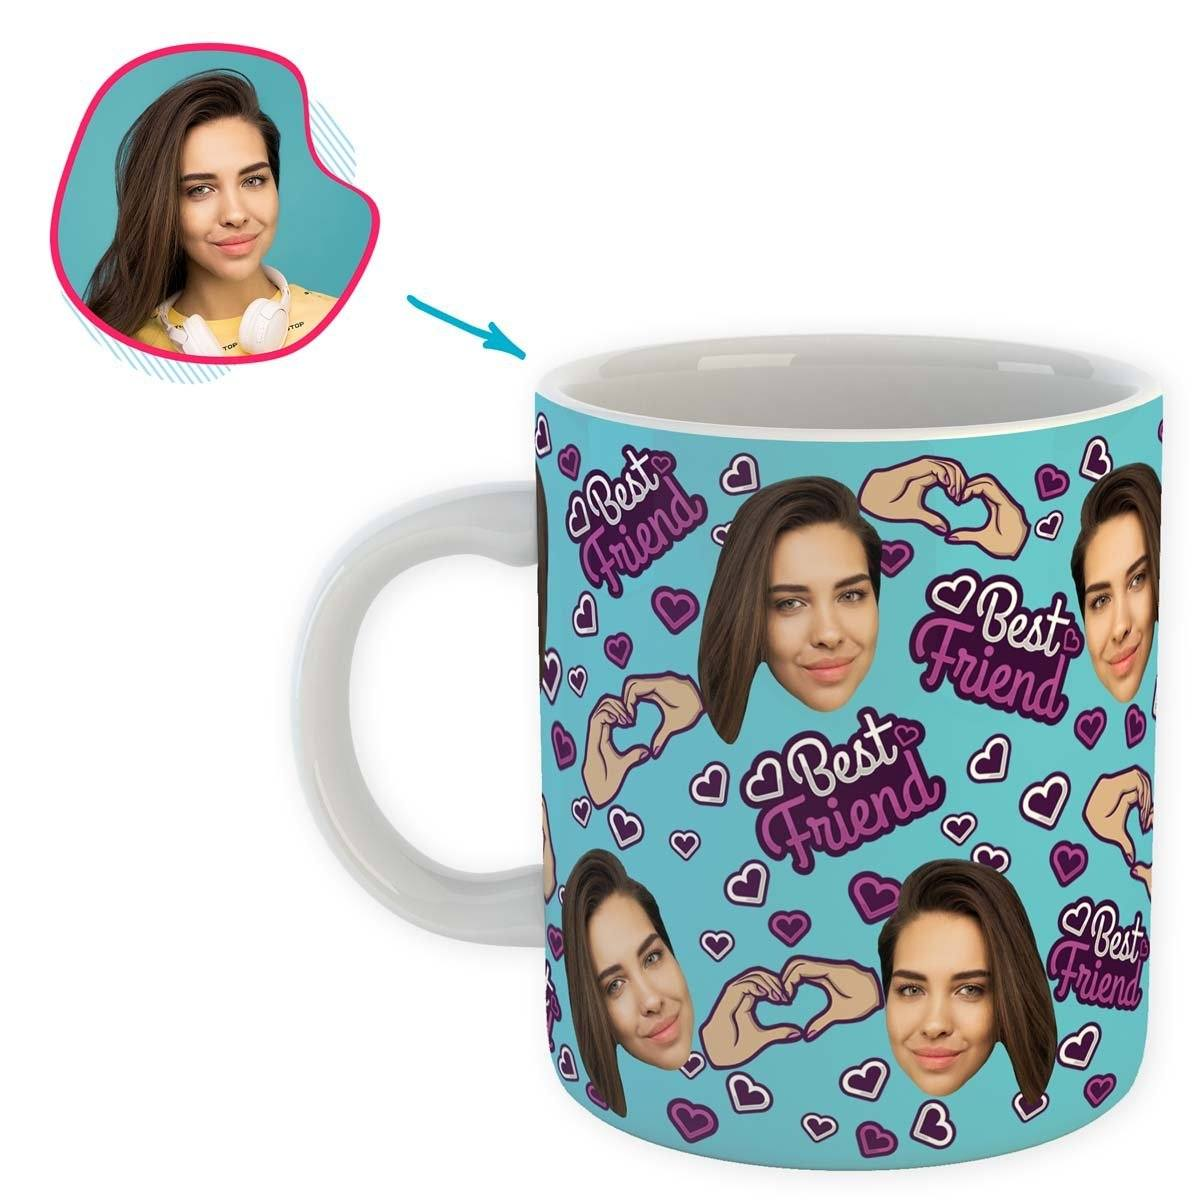 blue BFF for Her mug personalized with photo of face printed on it